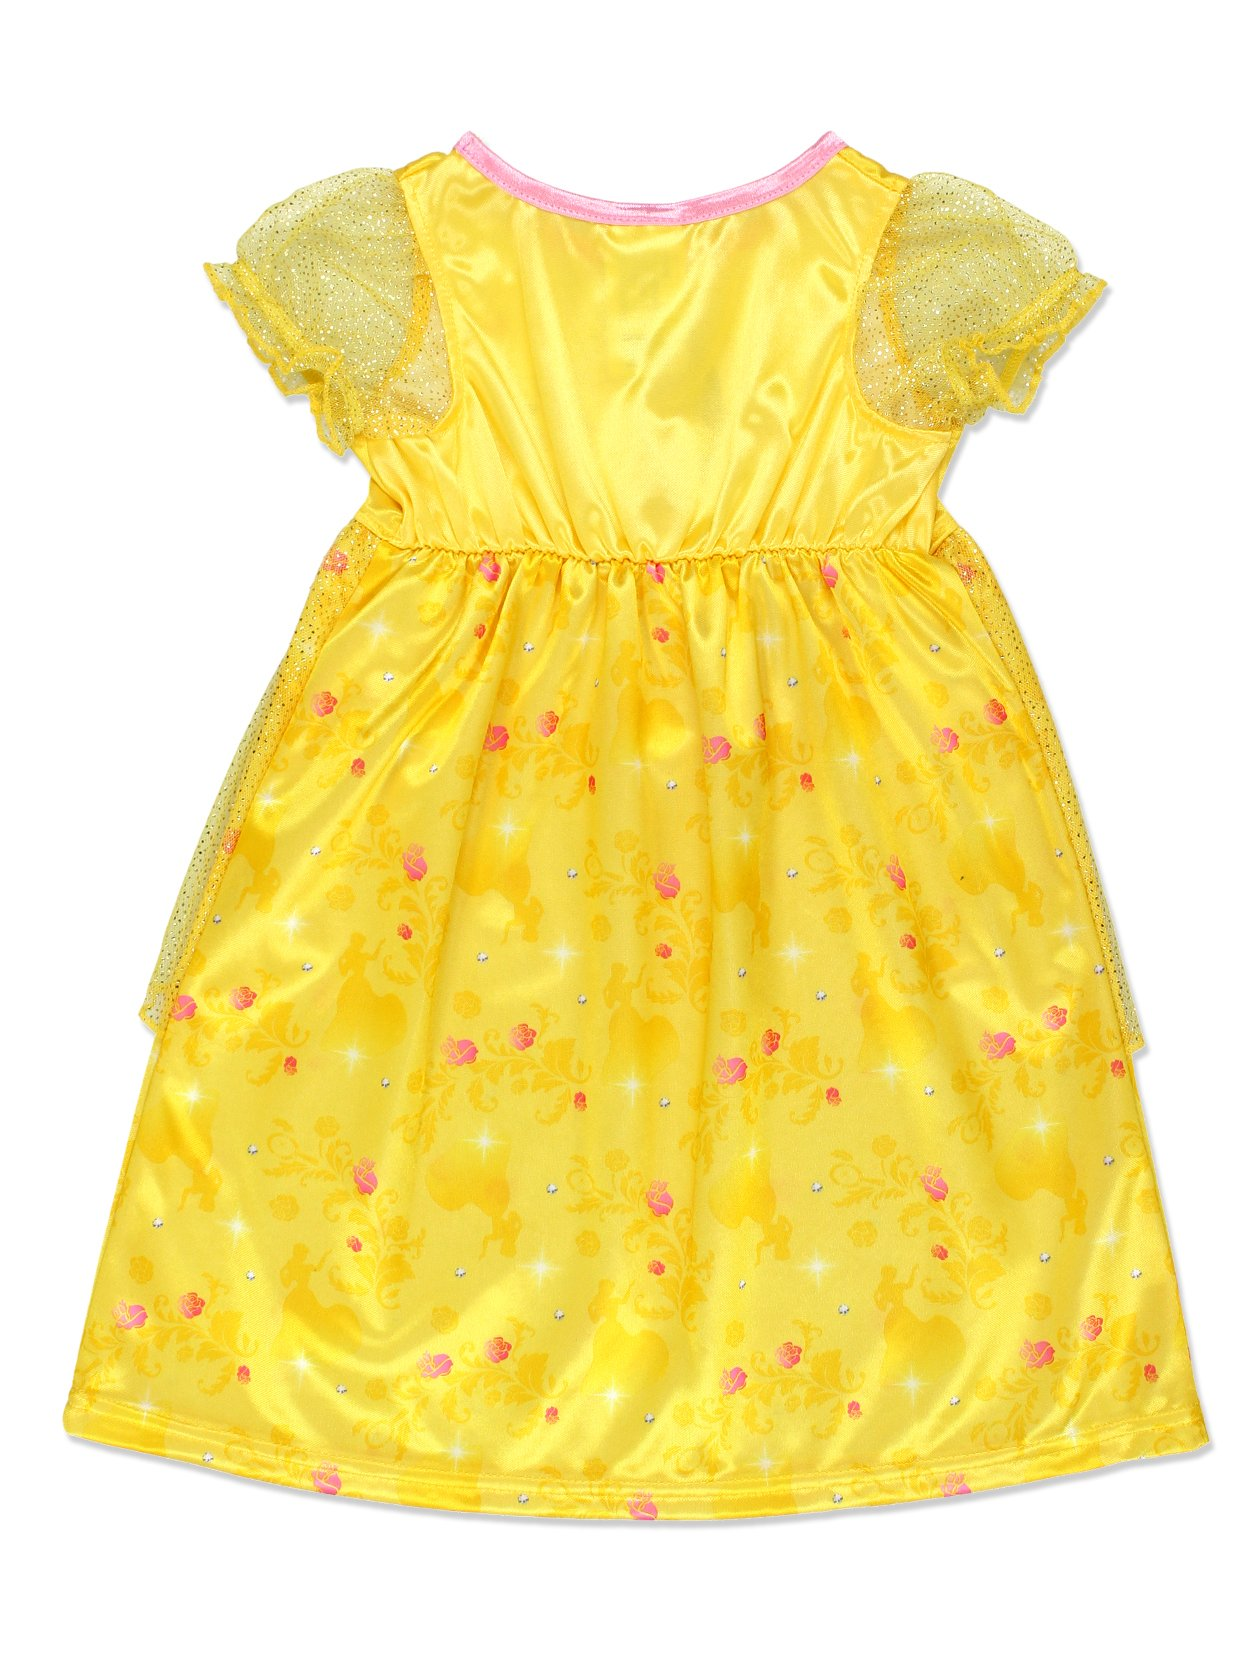 Disney Princess Belle Girls Fantasy Gown Nightgown (2T, Yellow/Multi) by Disney Princess (Image #2)